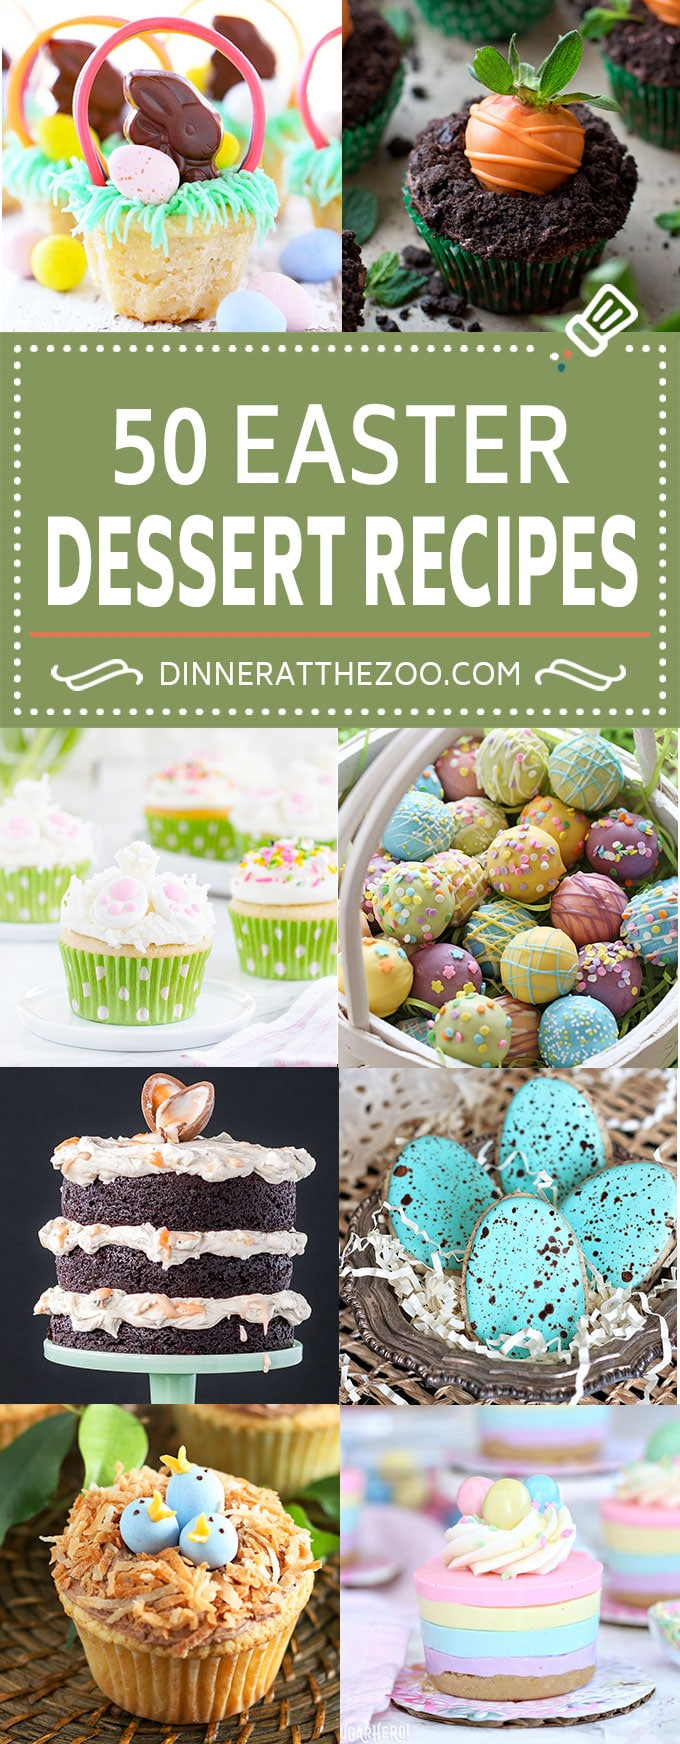 50 Easter Dessert Recipes